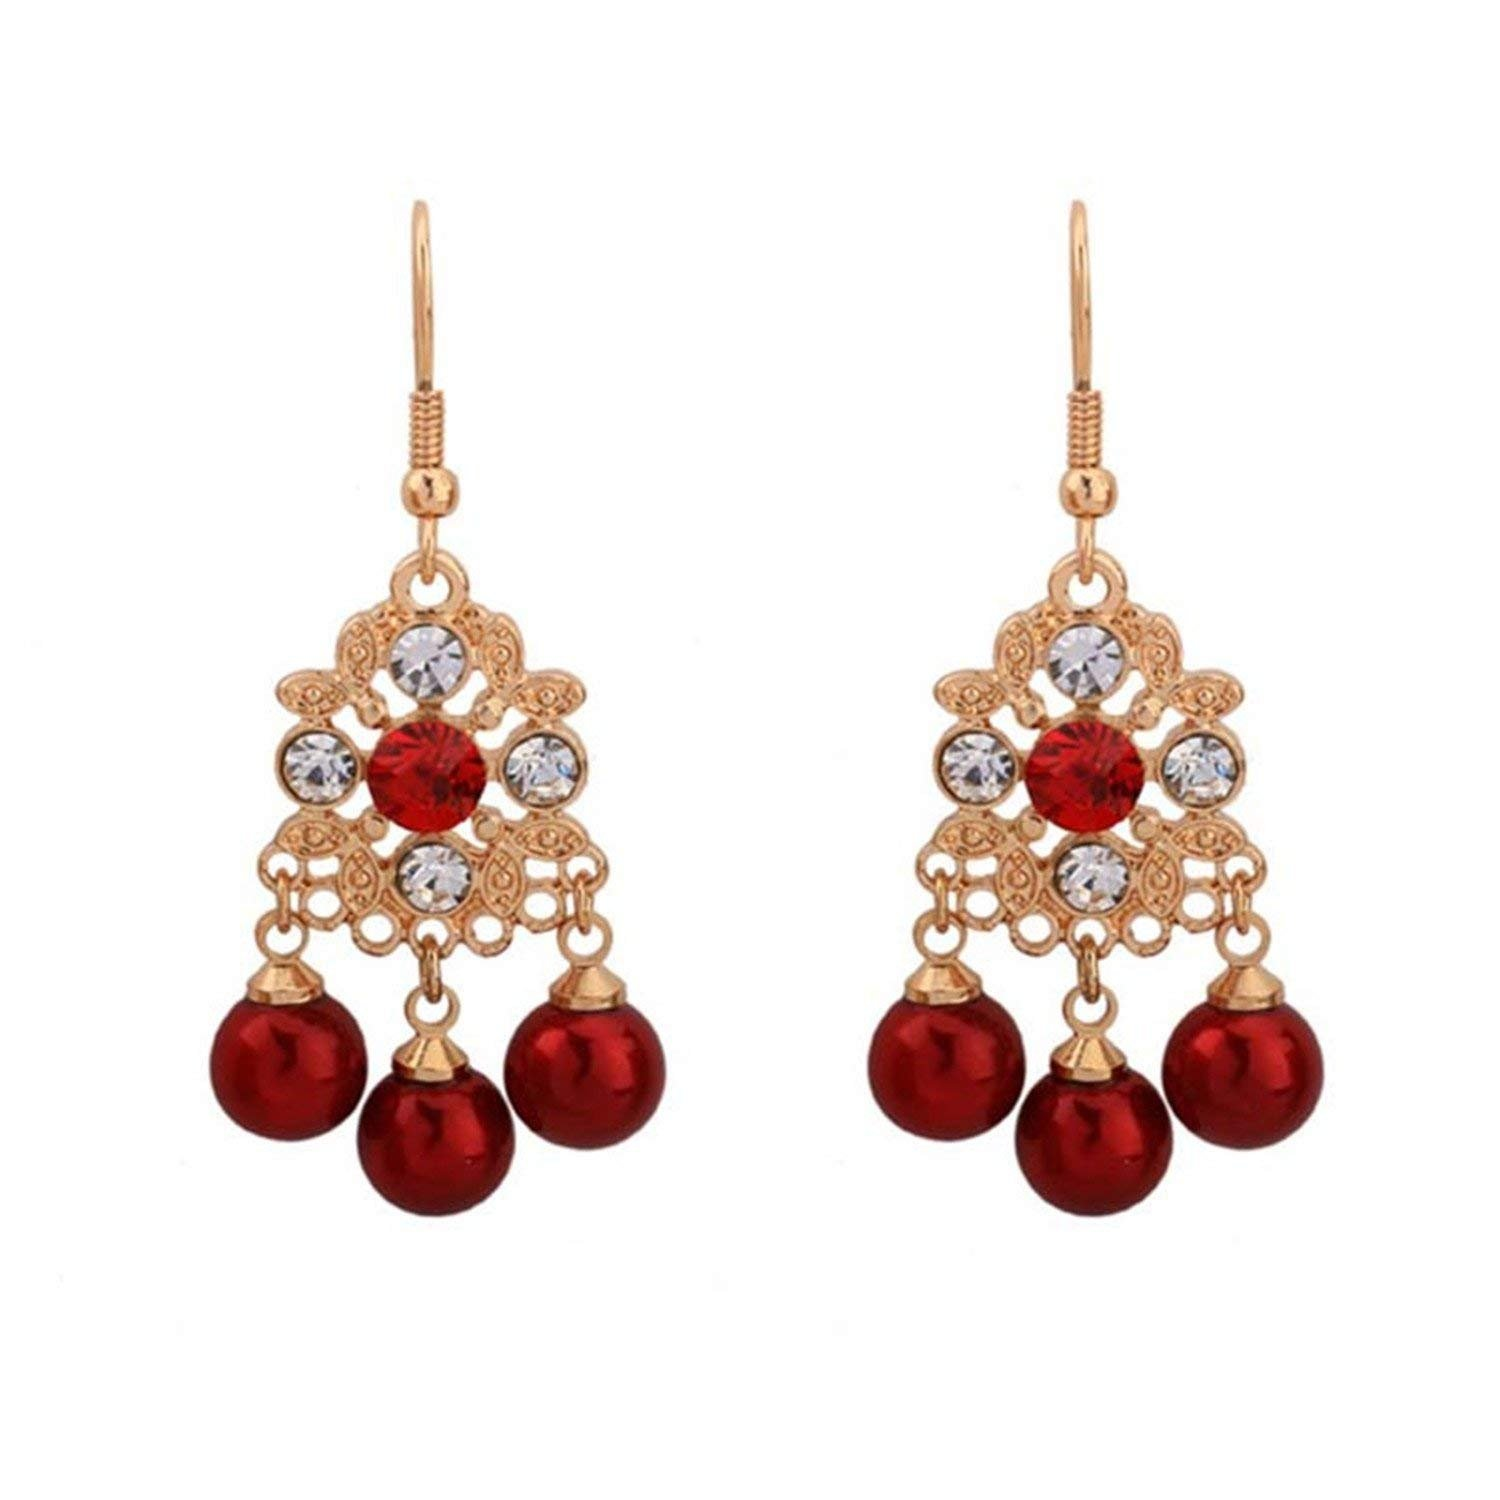 LeNG Earrings For Women NEW Classical Ear Stud With Red Pearl Round Shape Earrings Fine Jewelry EH007,Aspicture